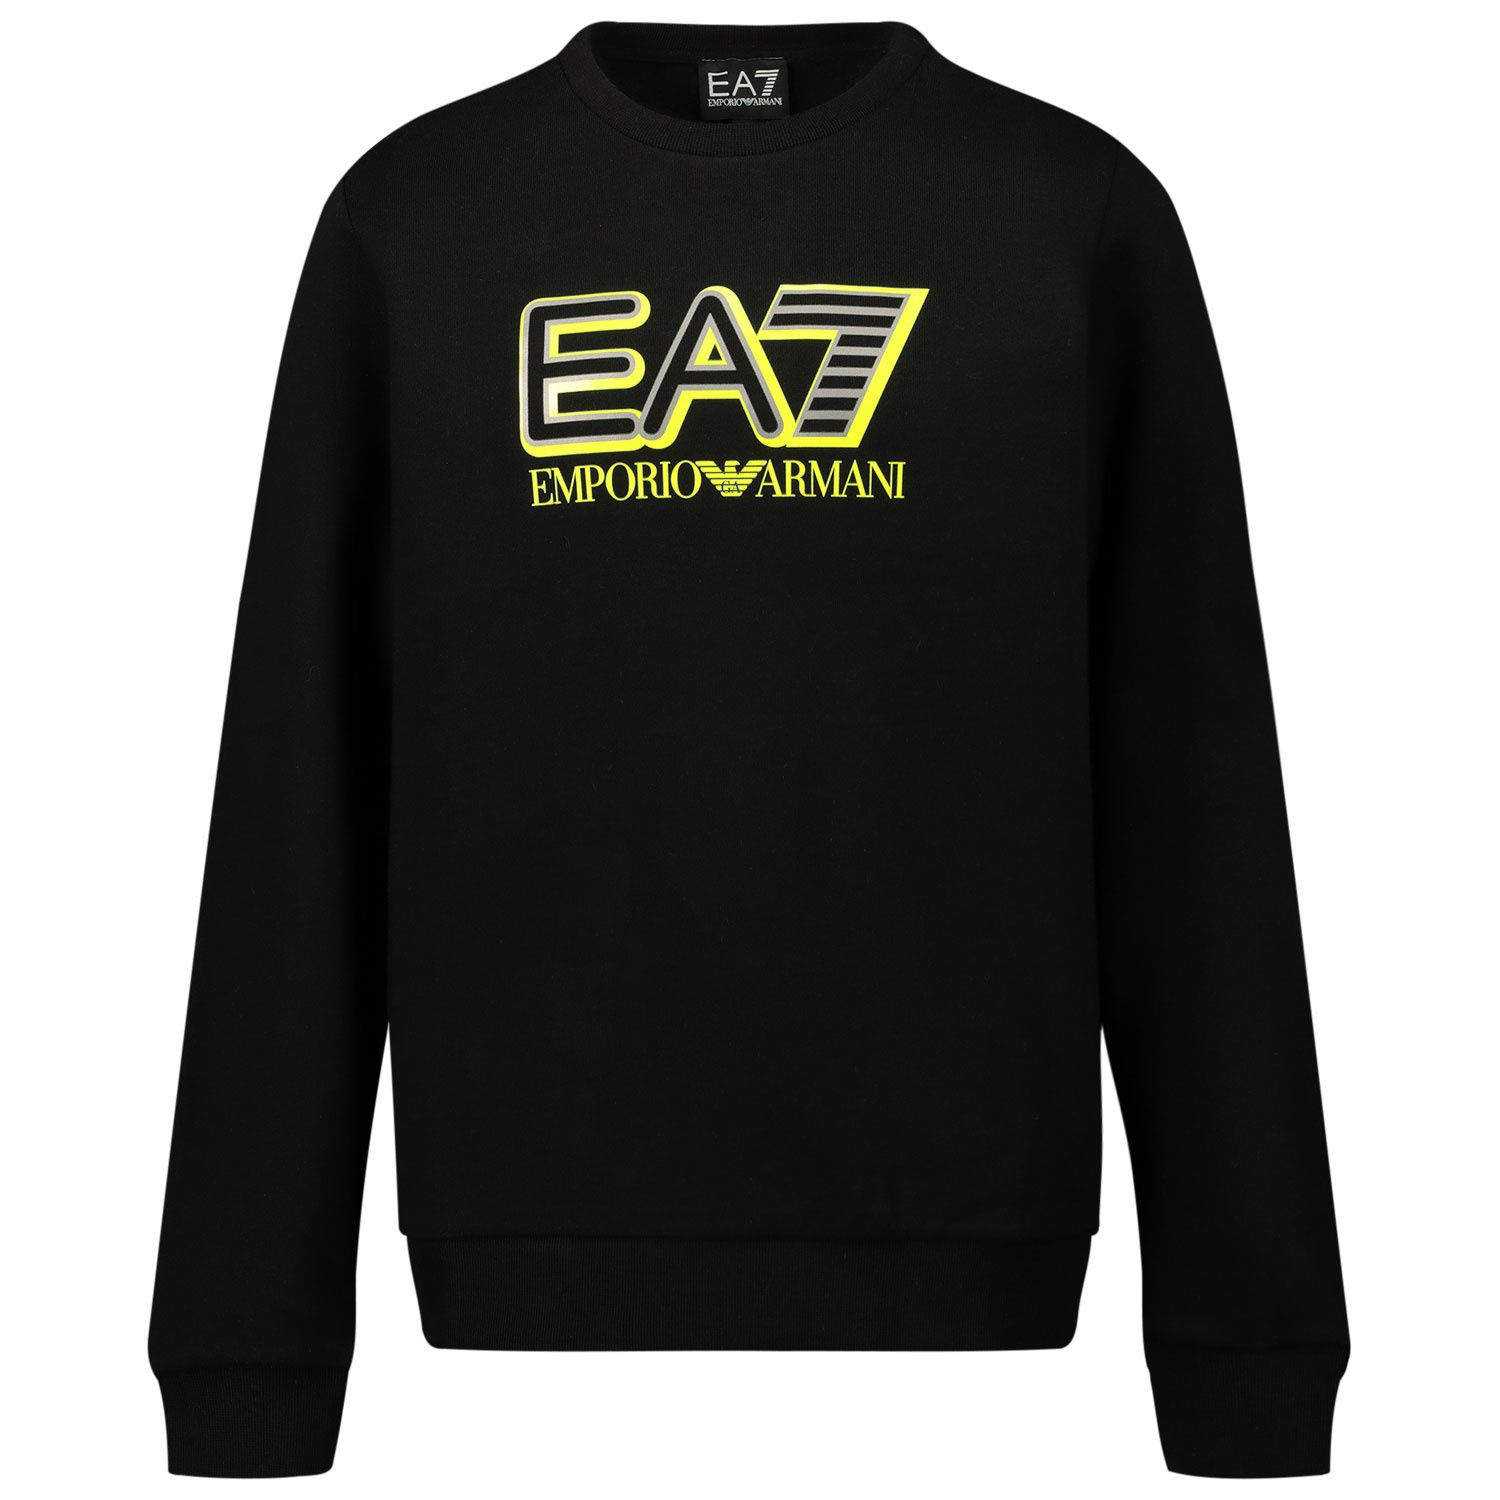 Picture of EA7 6HBM53 kids sweater black